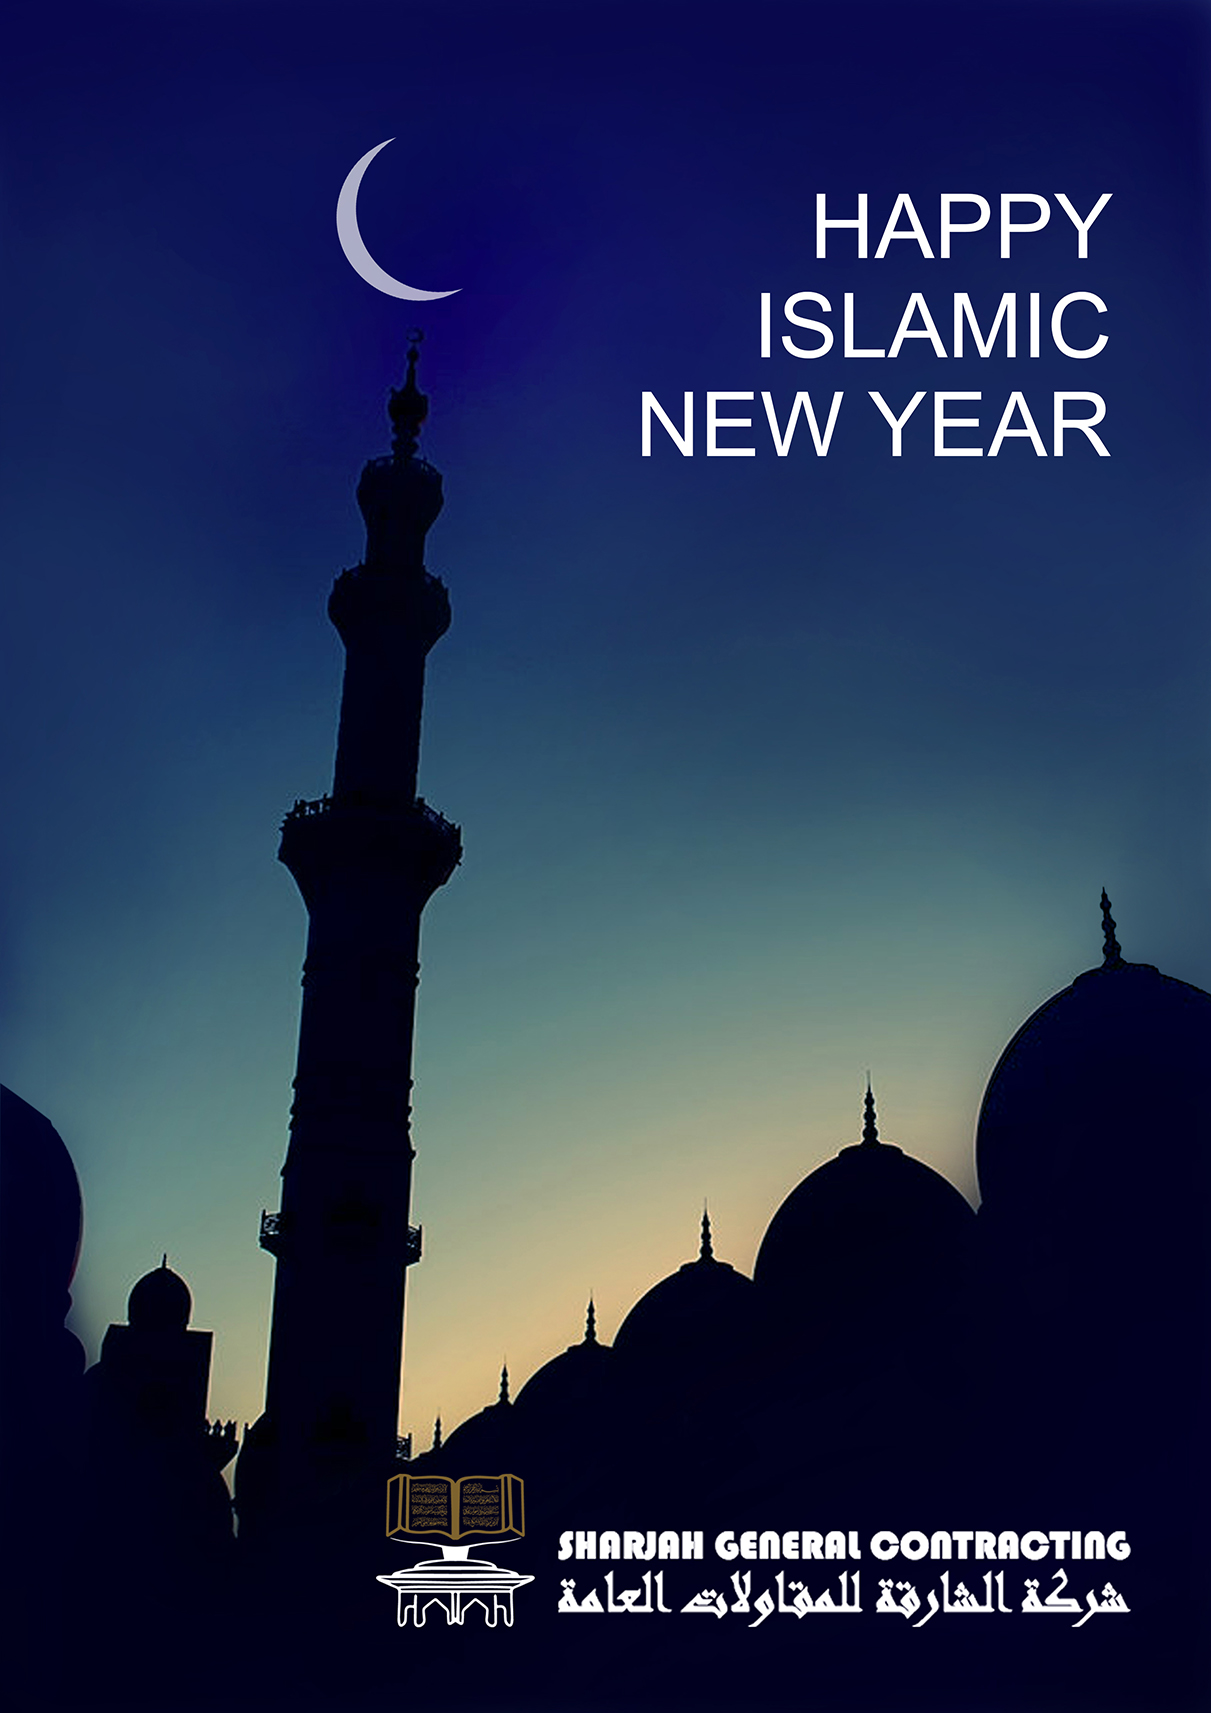 Islamic Happy New Year Hd Photo